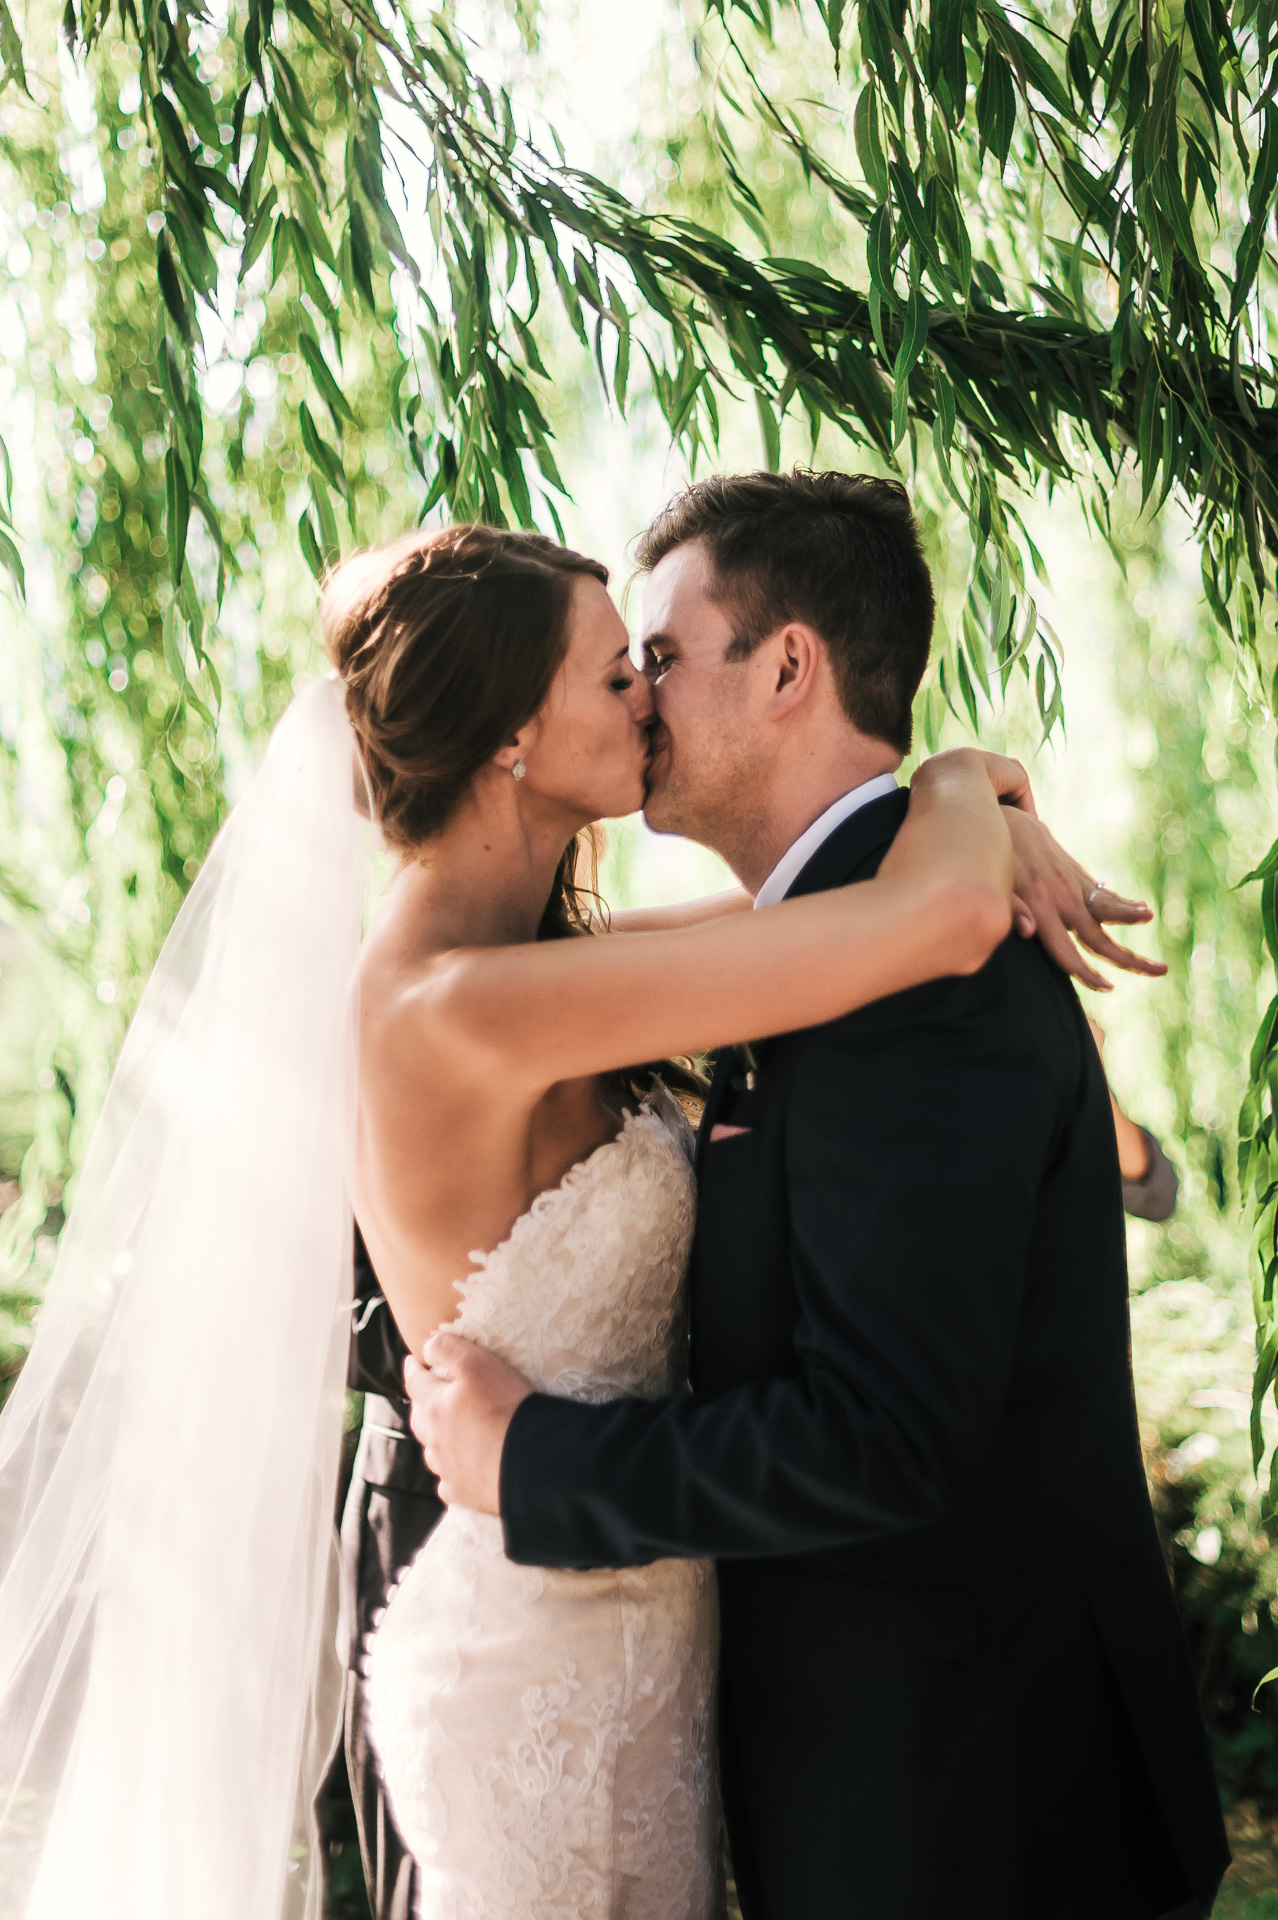 bride and groom share their first kiss as husband and wife at the secret garden located at the Historic Parish ranch in Oak Glen California